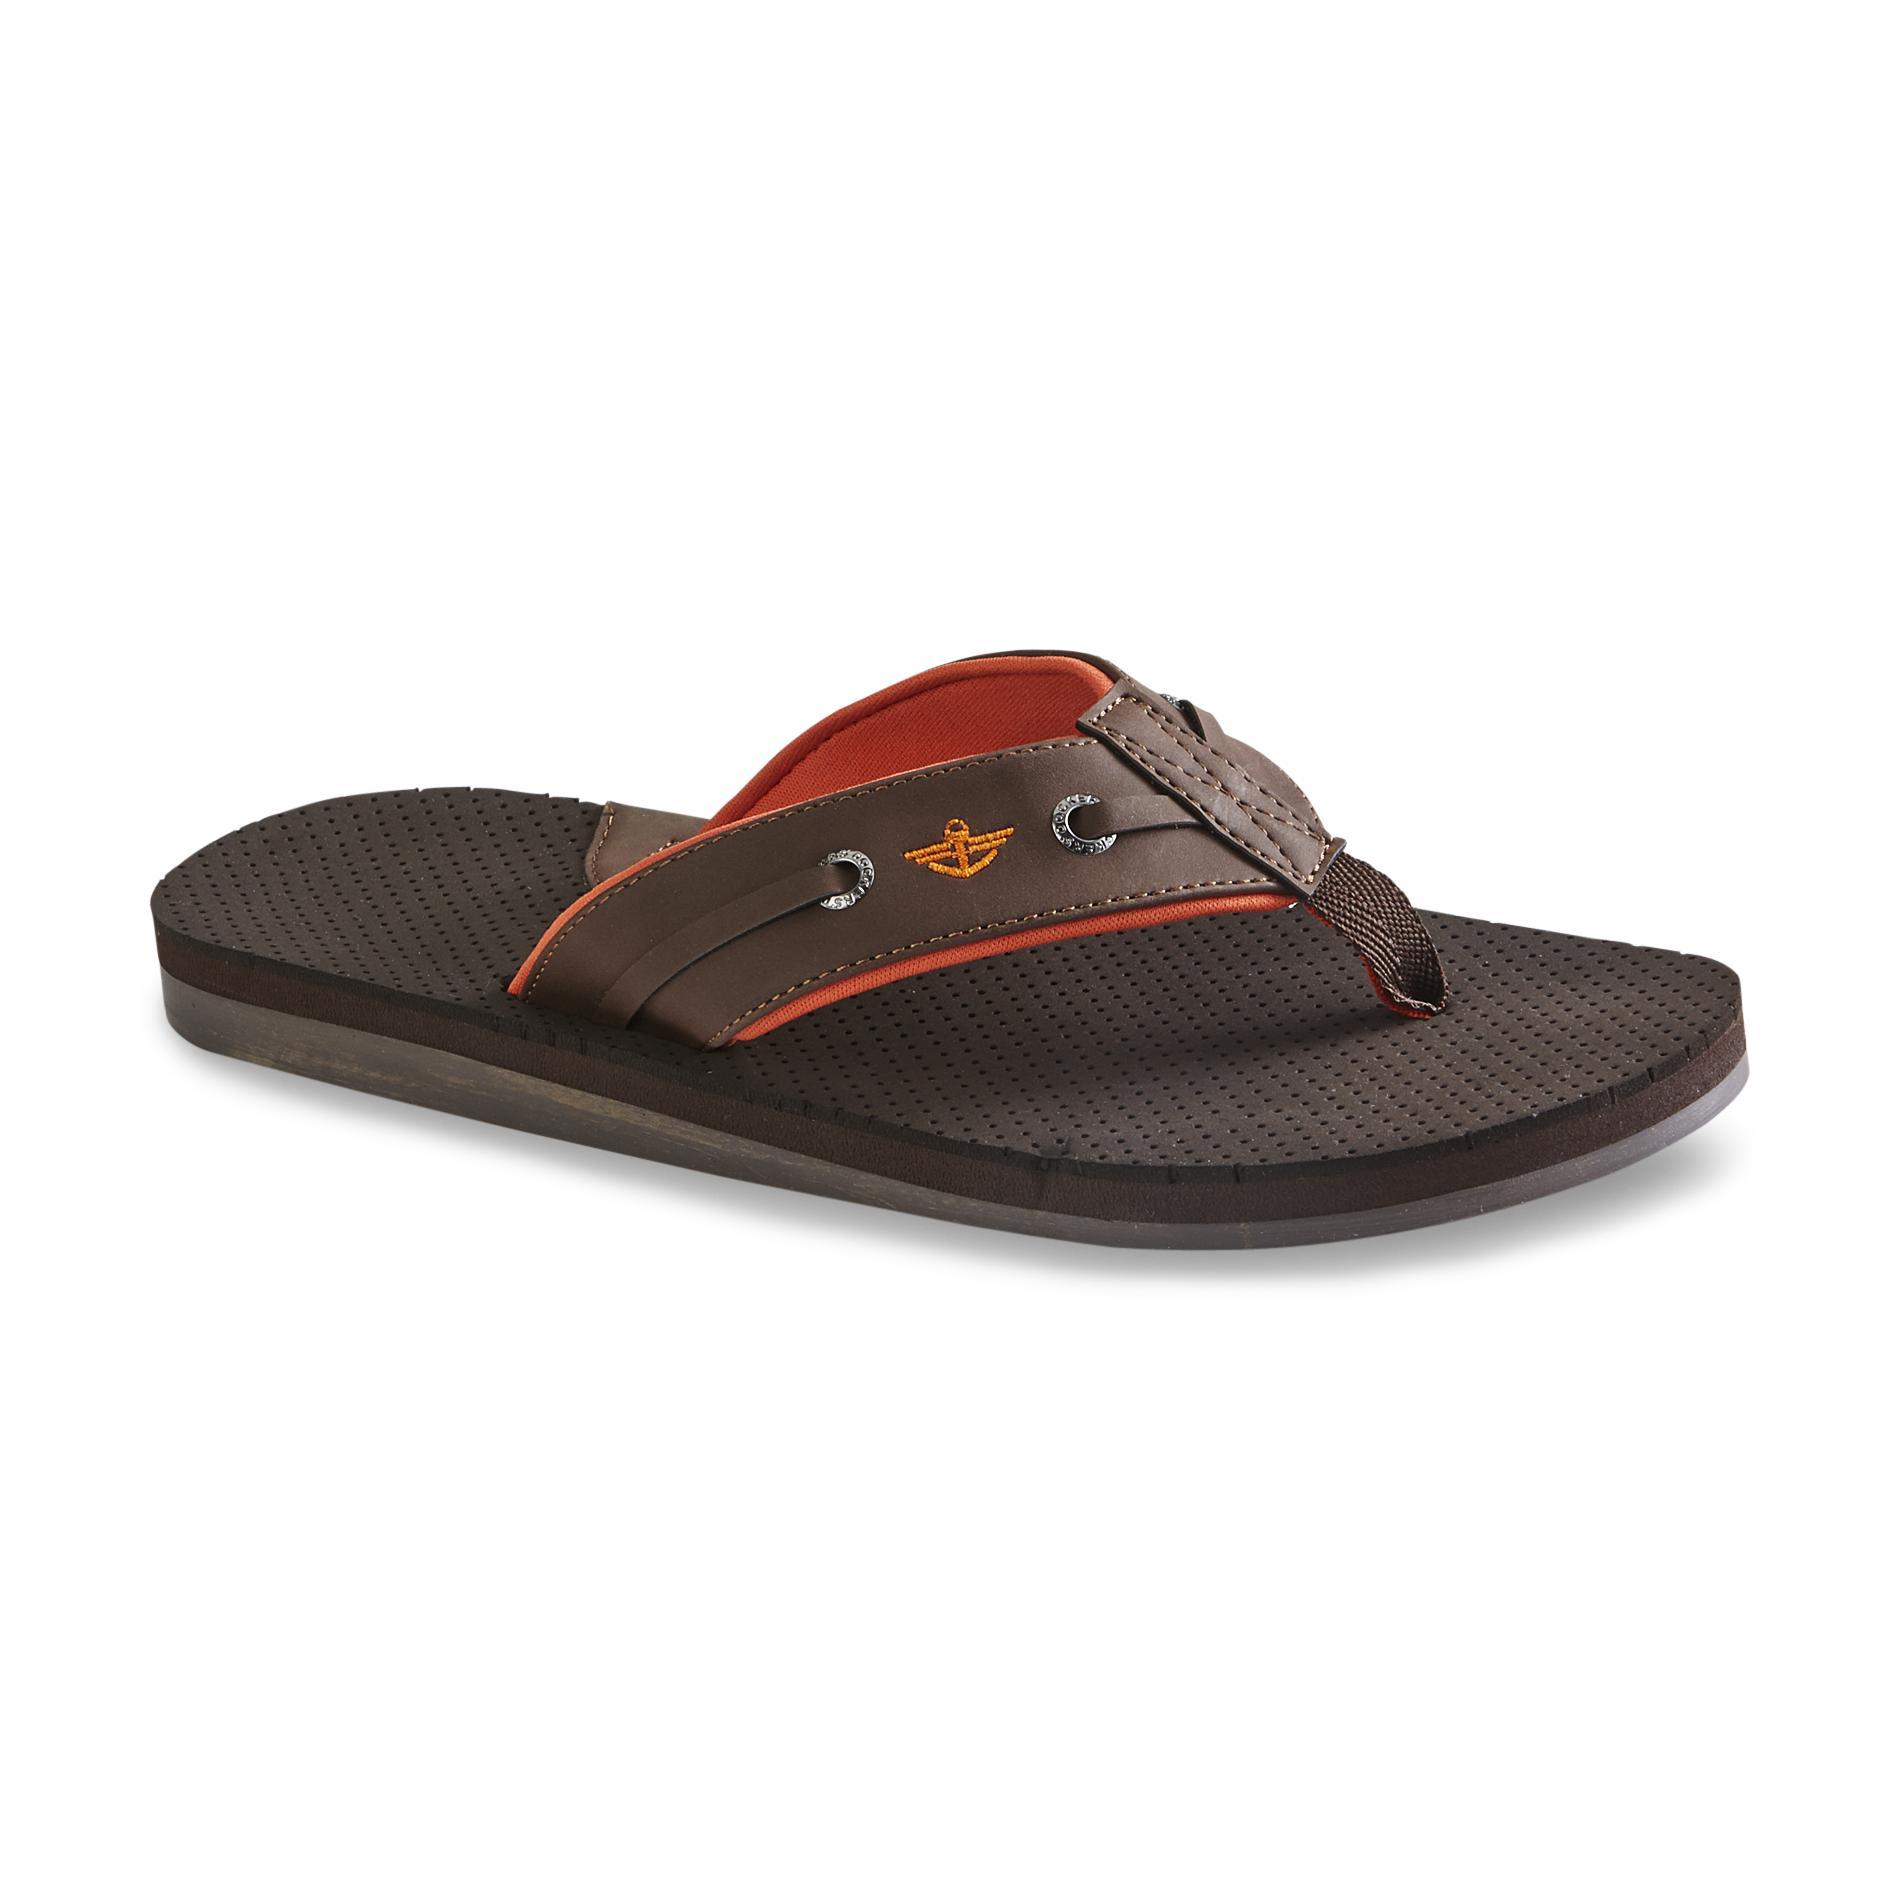 Dockers Men's Brown/Orange Flip-Flop